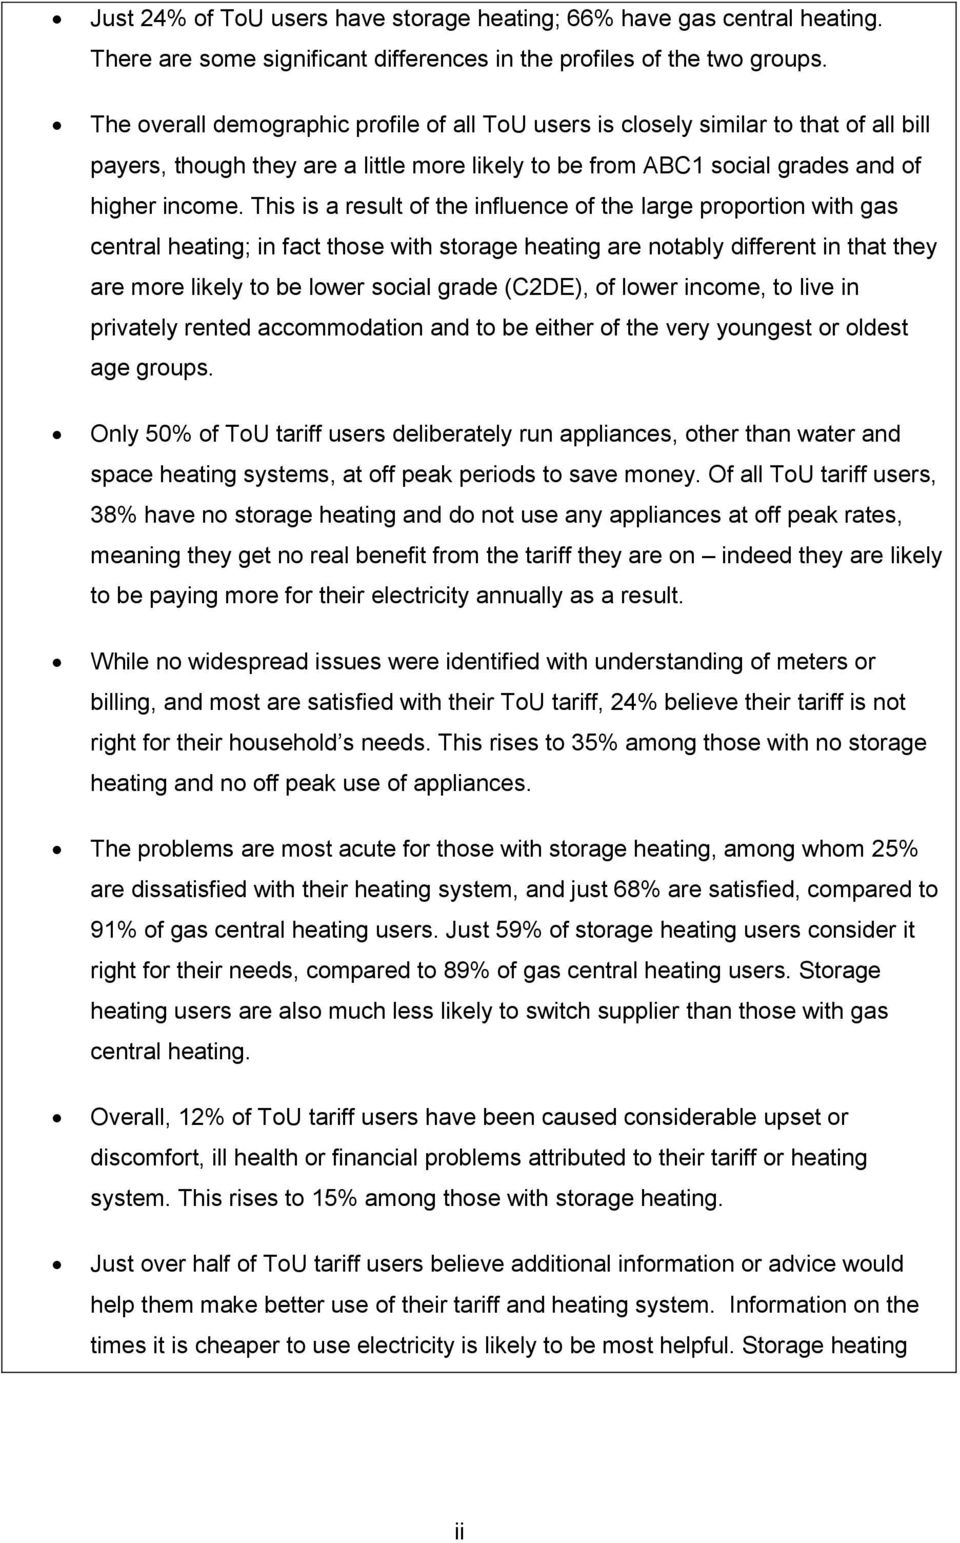 This is a result of the influence of the large proportion with gas central heating; in fact those with storage heating are notably different in that they are more likely to be lower social grade